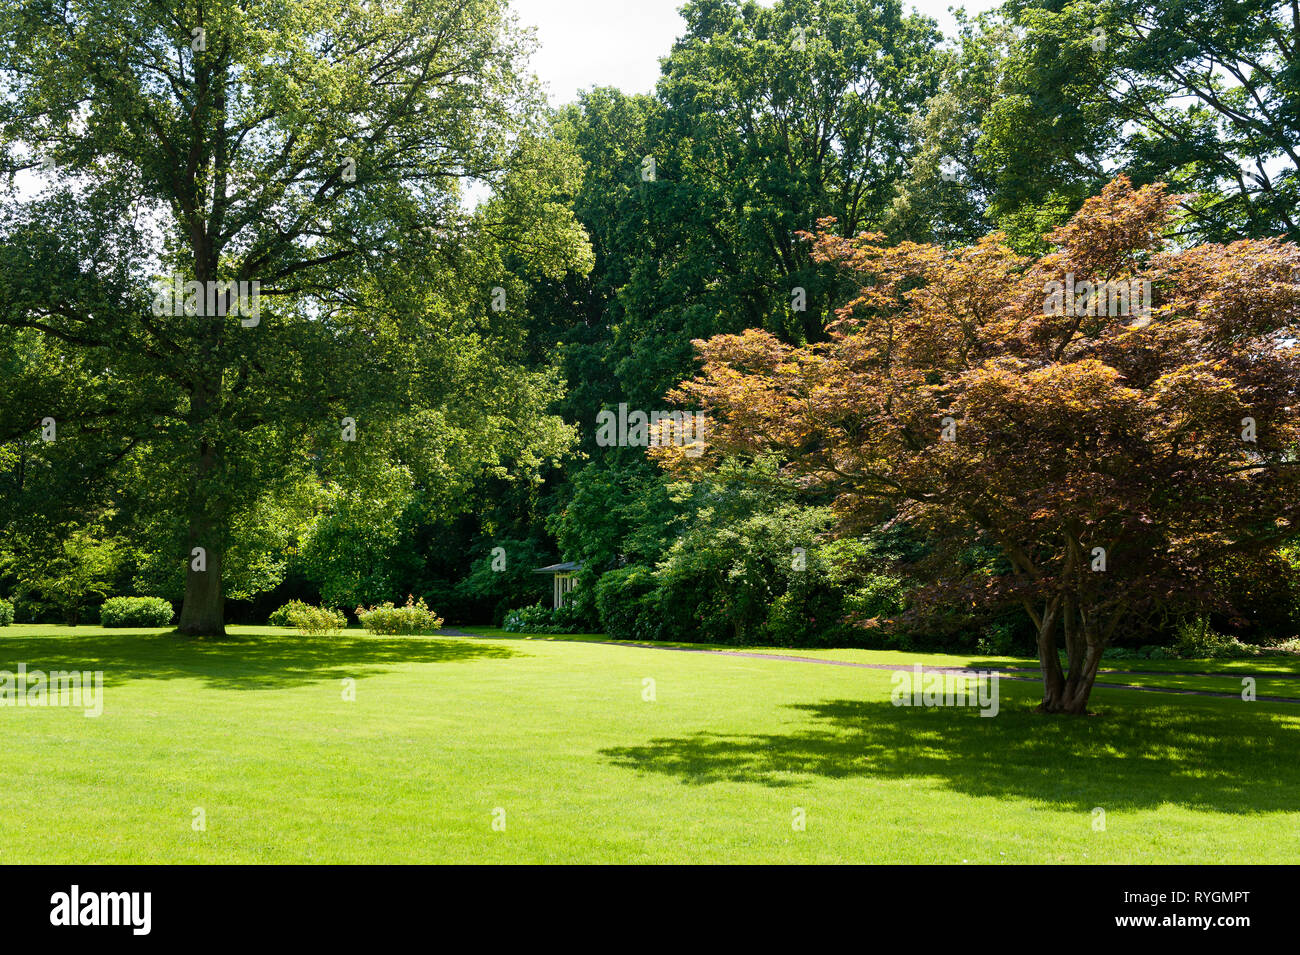 Trees by lawn - Stock Image